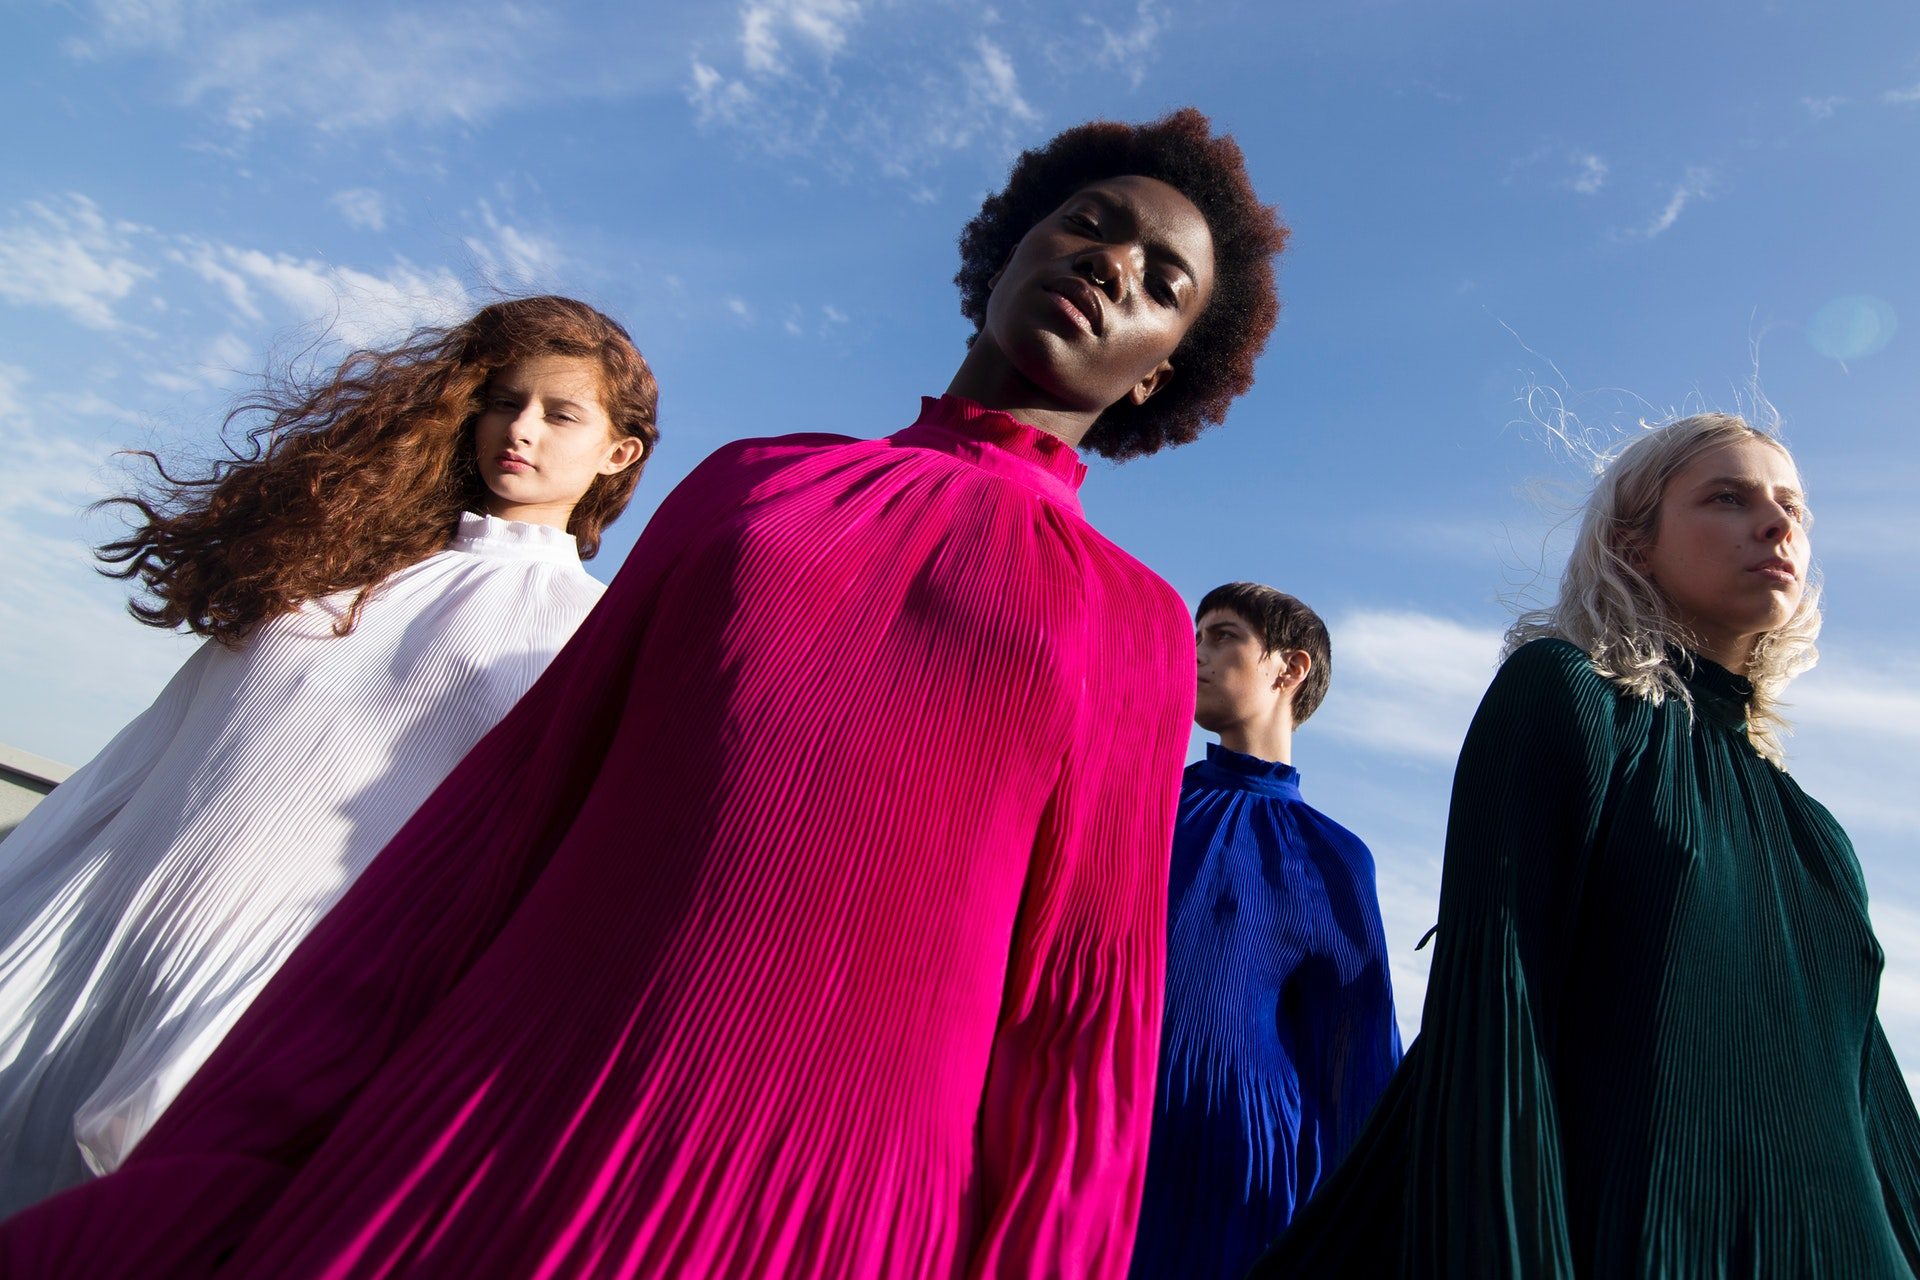 low-angle-photography-of-four-women-in-assorted-color-long-1034361.jpg